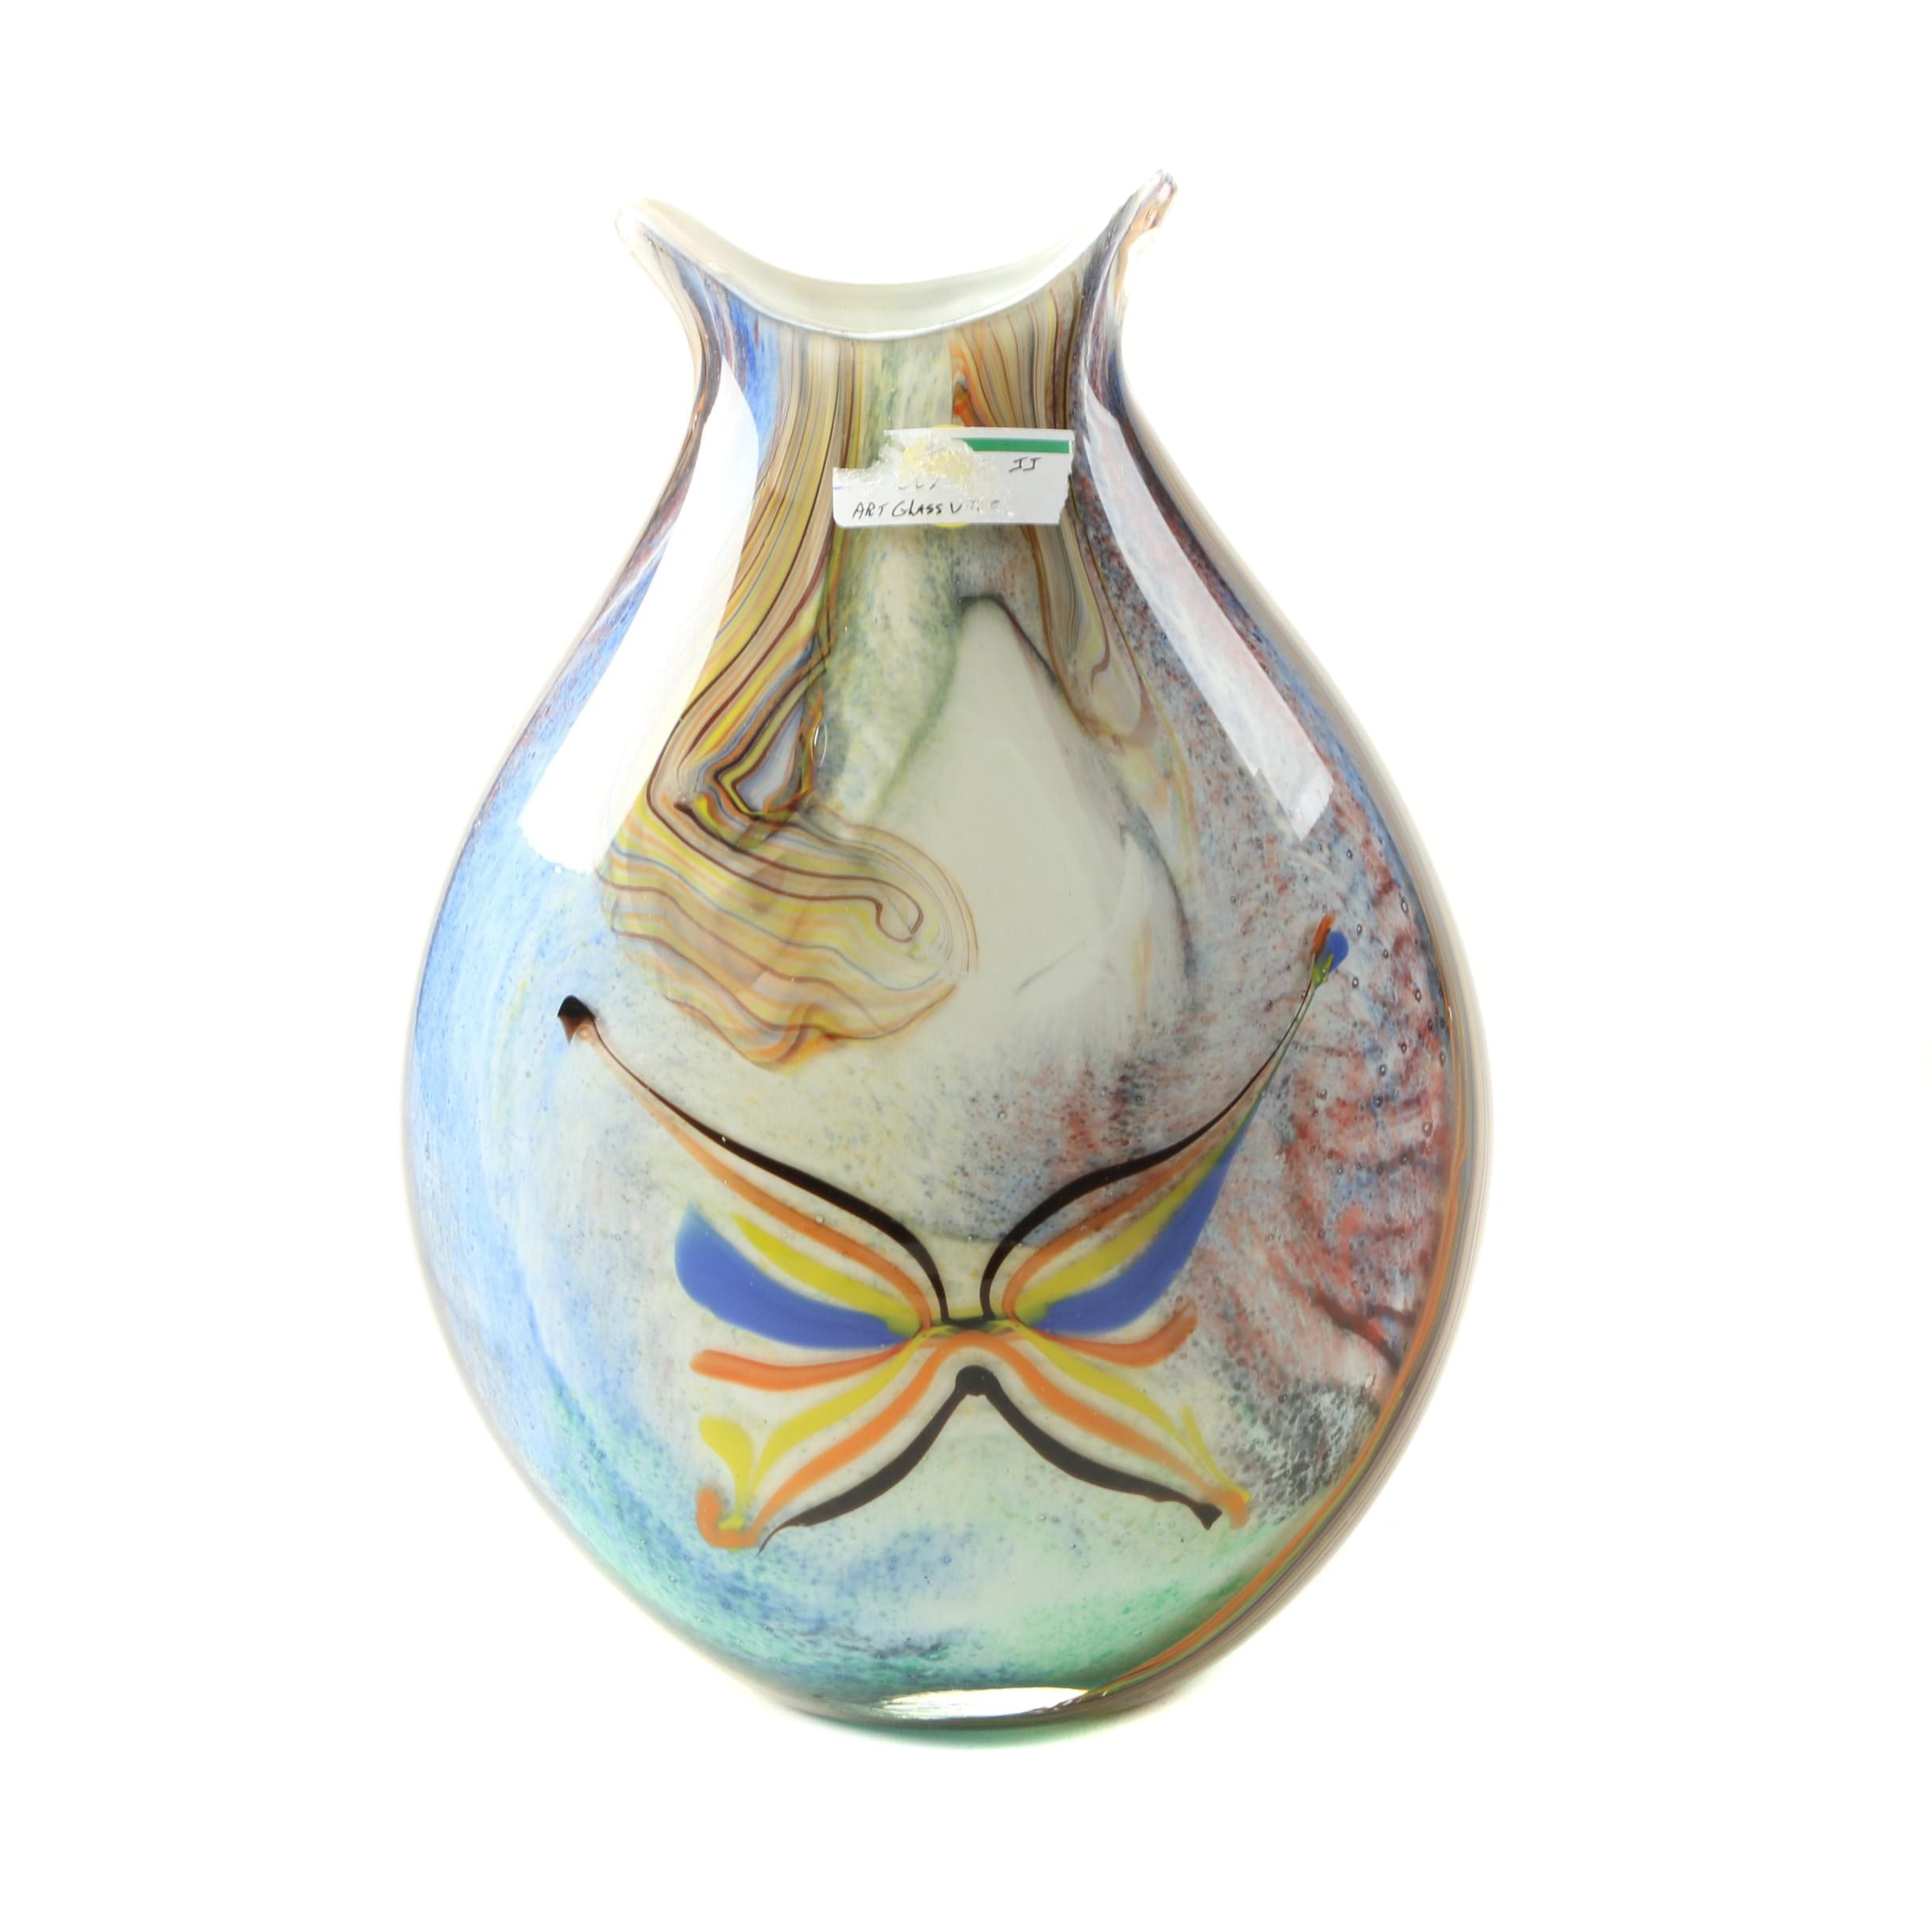 Murano Style Combed Art Glass Vase with Butterfly Motif